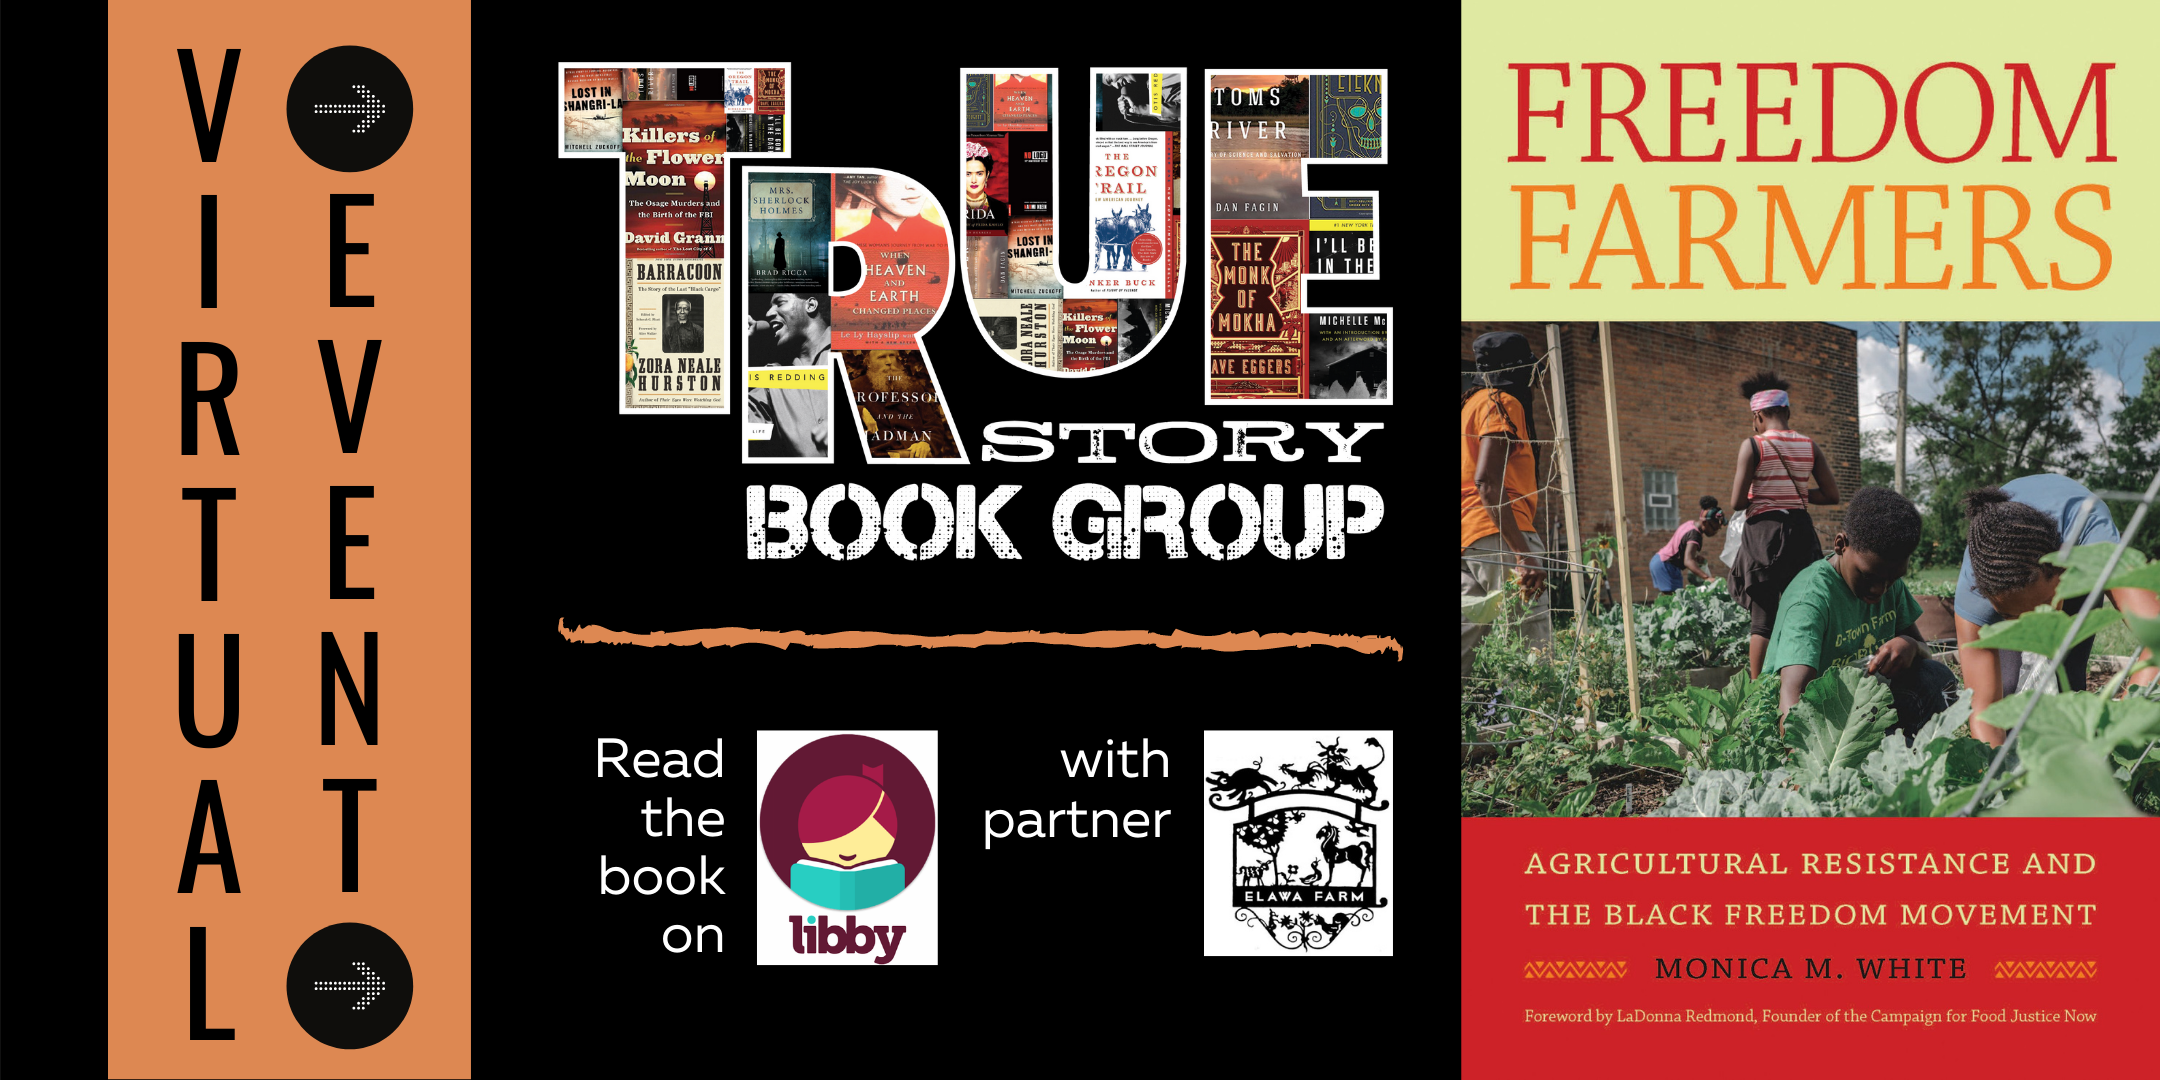 True Story Book Group: Freedom Farmers